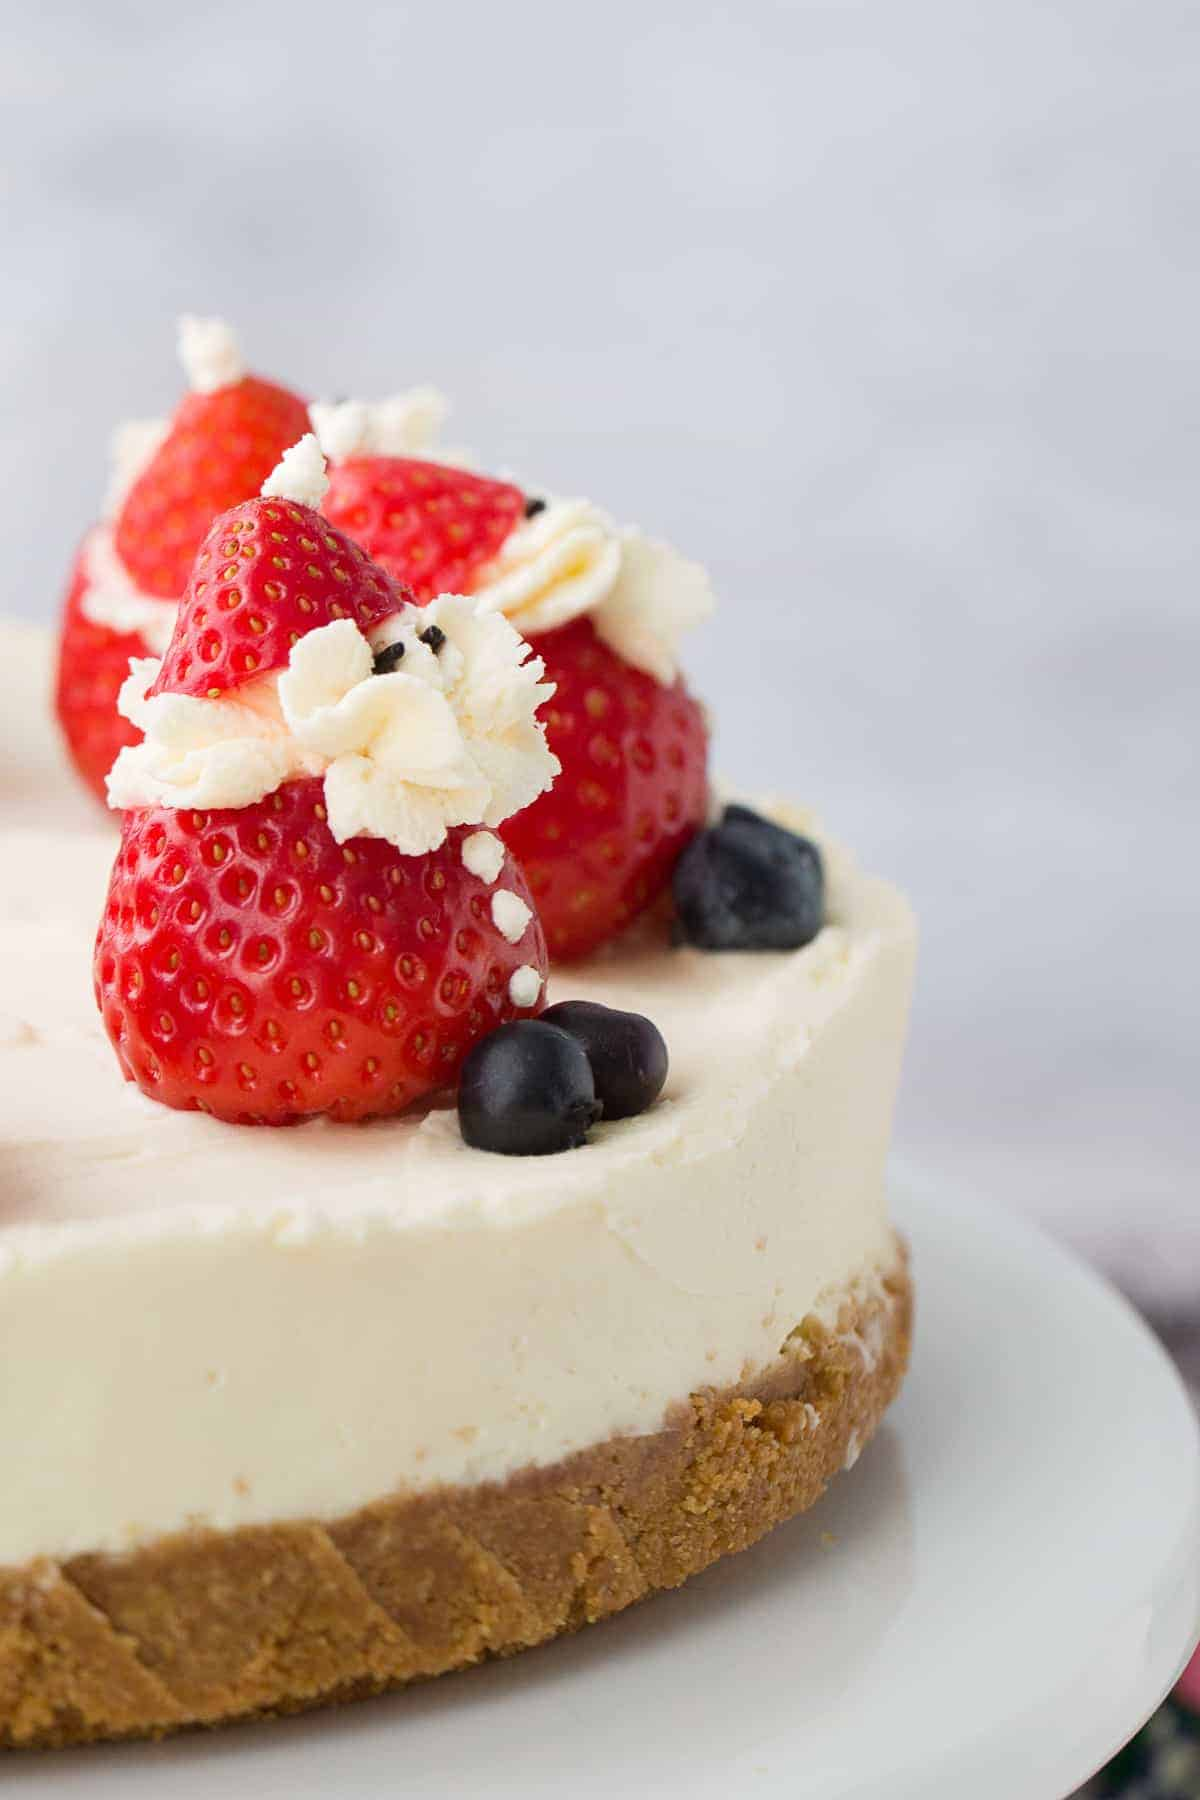 Side profile of a white cheesecake with a biscuit base. There are stuffed strawberries on top.